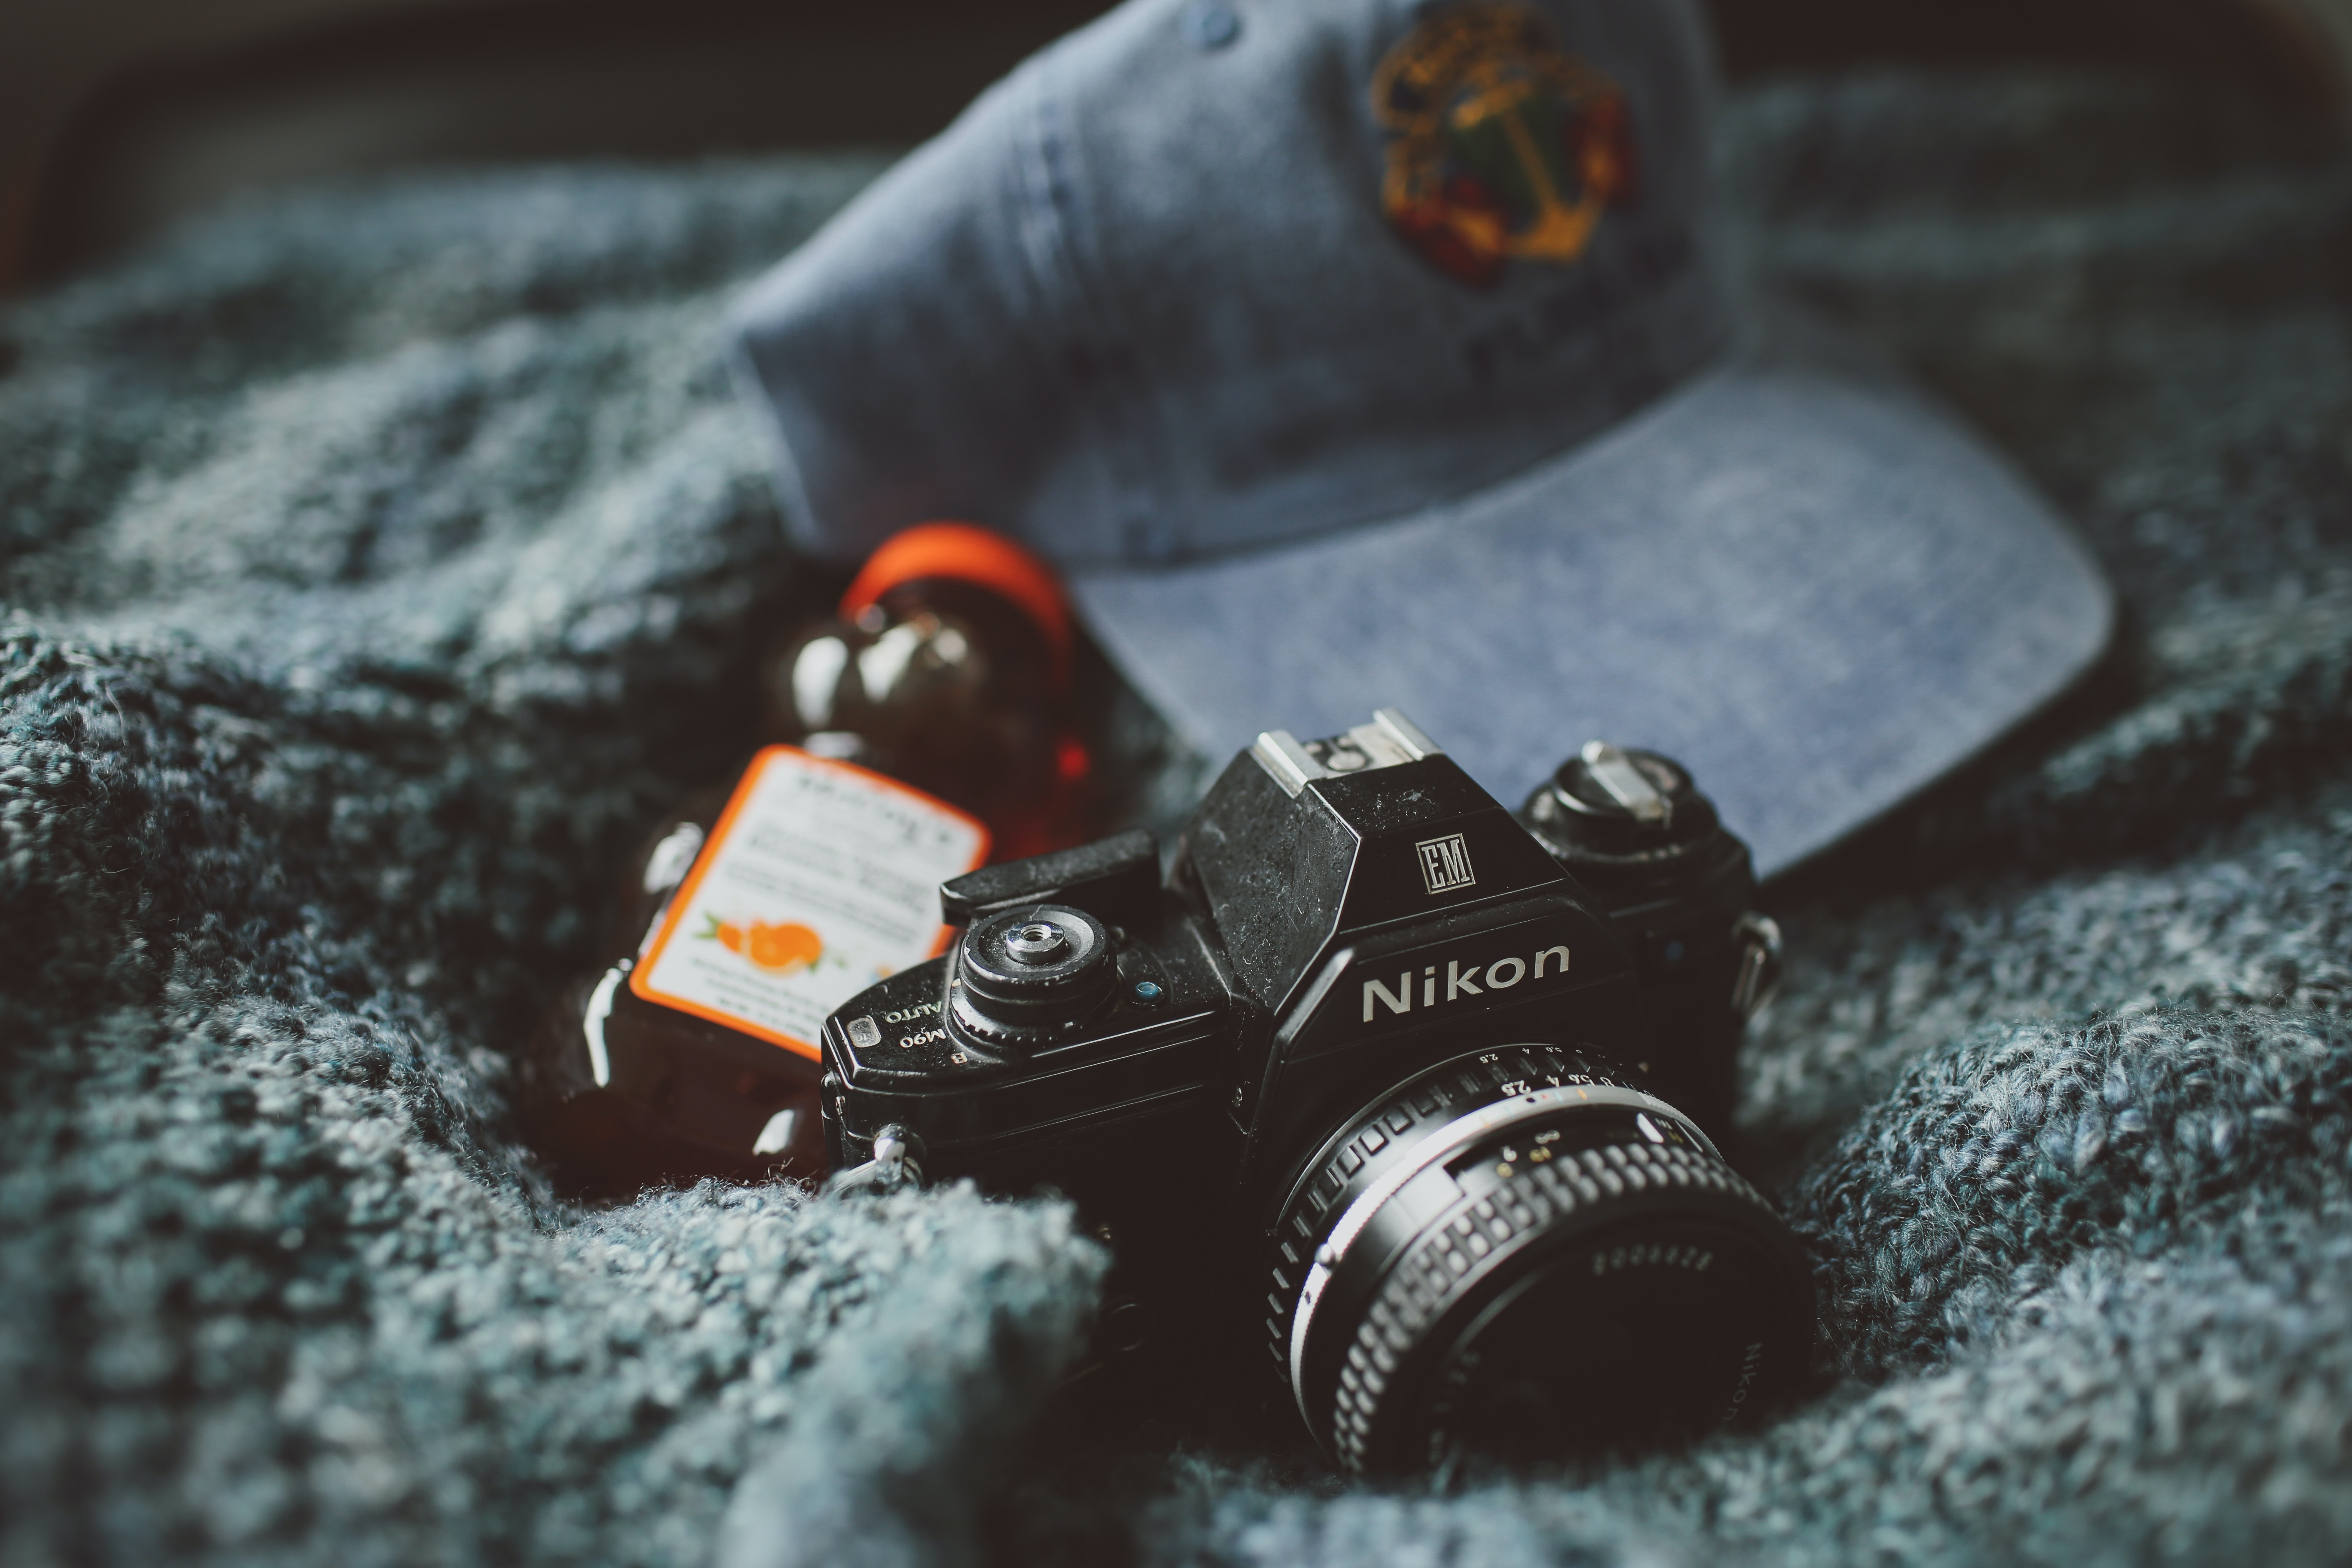 A vintage Nikon camera with its lens cover beside a bottle of honey and a blue cap on a gray blanket